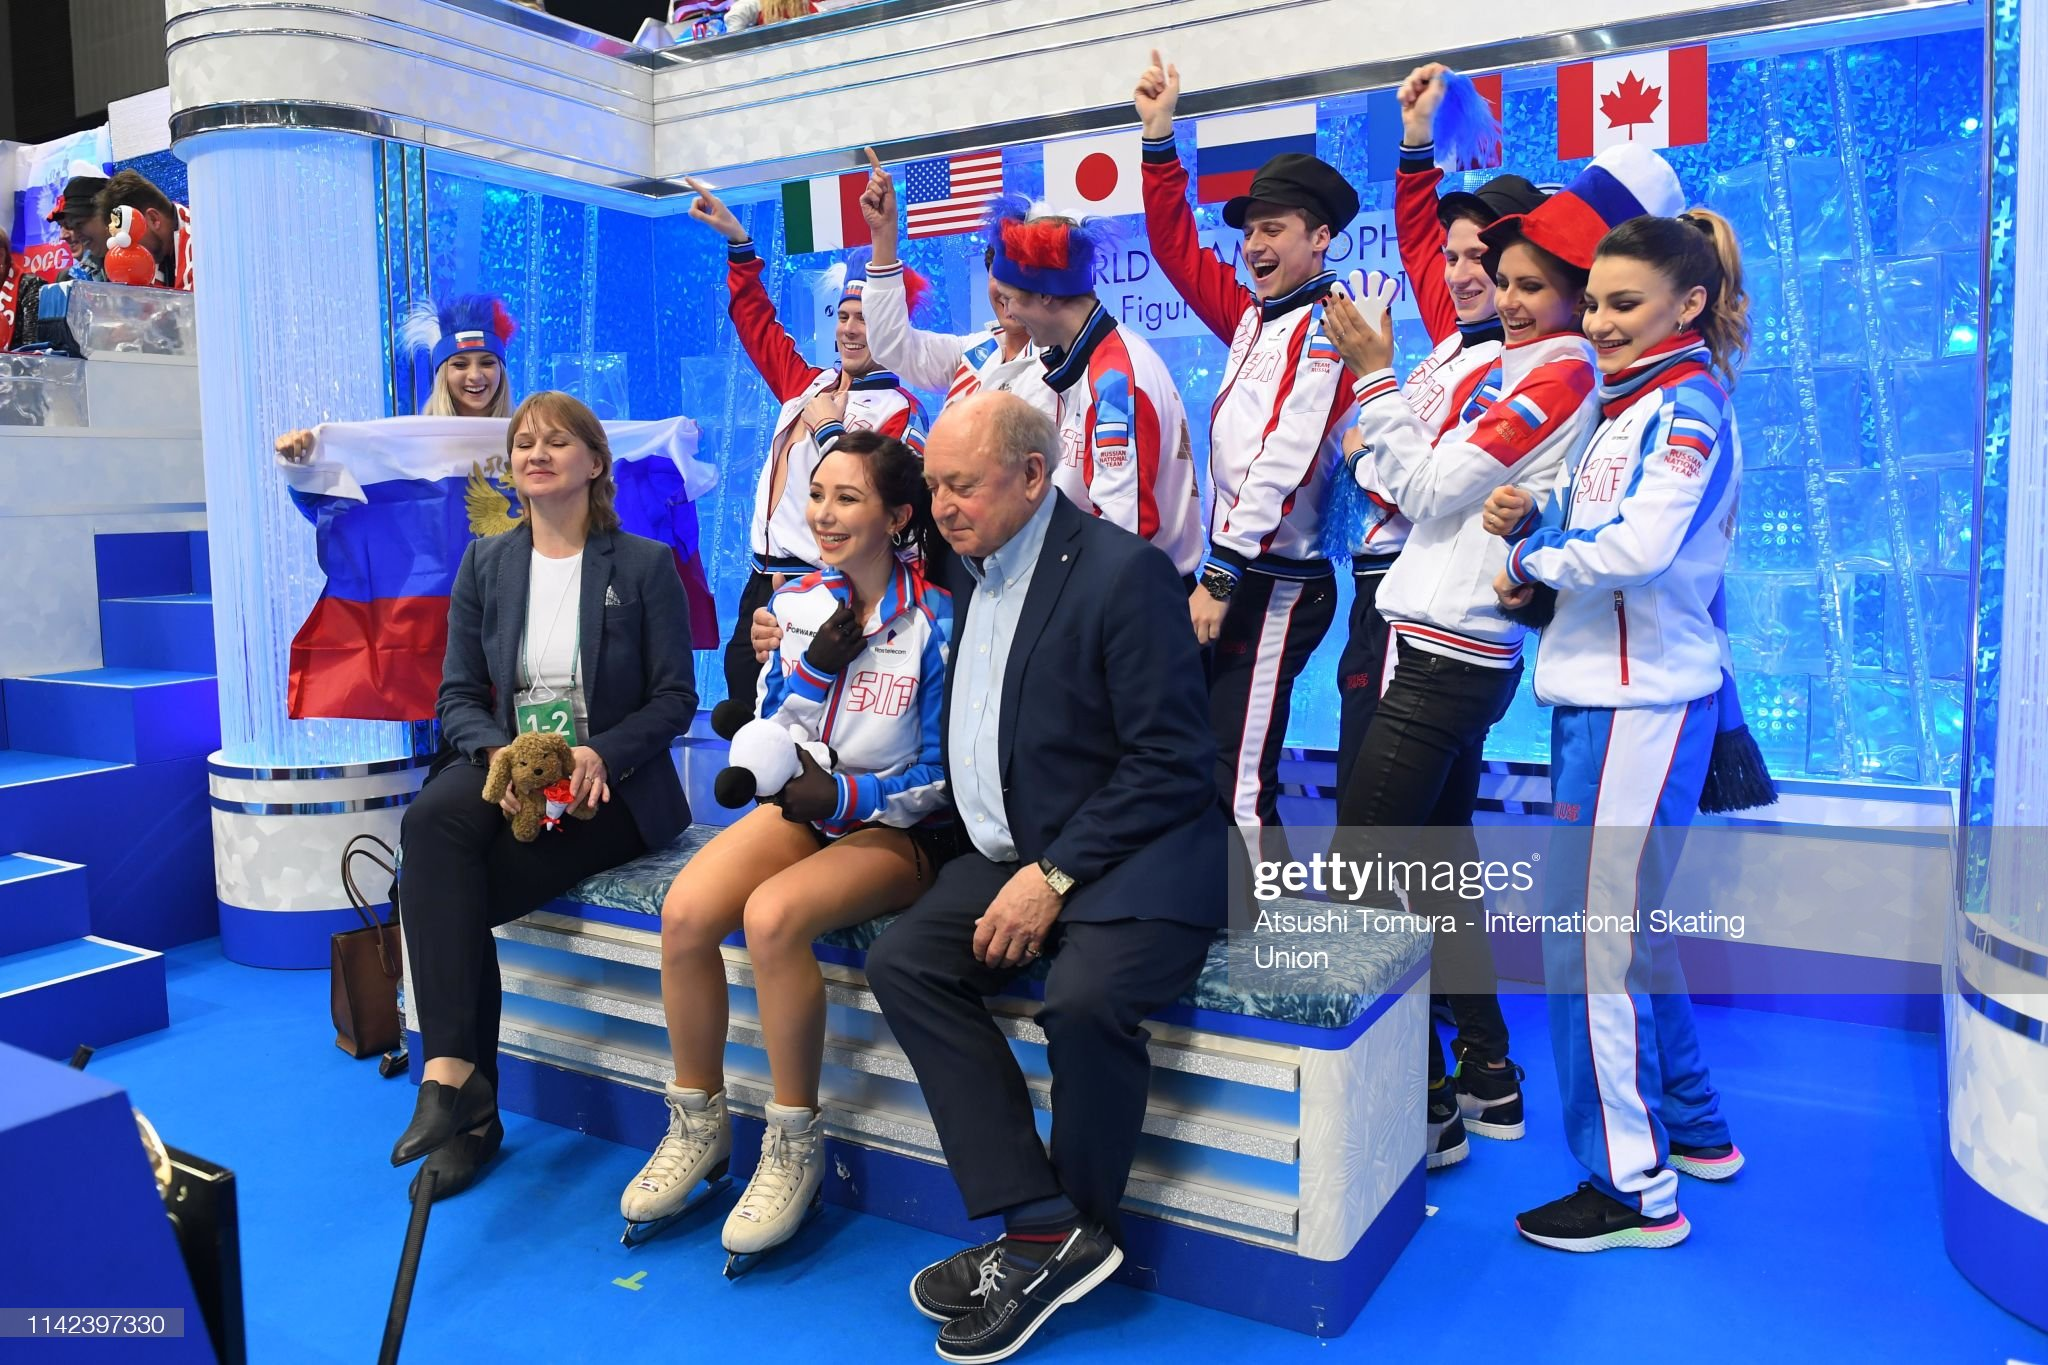 https://media.gettyimages.com/photos/elizavetatuktamysheva-of-russia-waits-for-her-score-with-her-team-at-picture-id1142397330?s=2048x2048